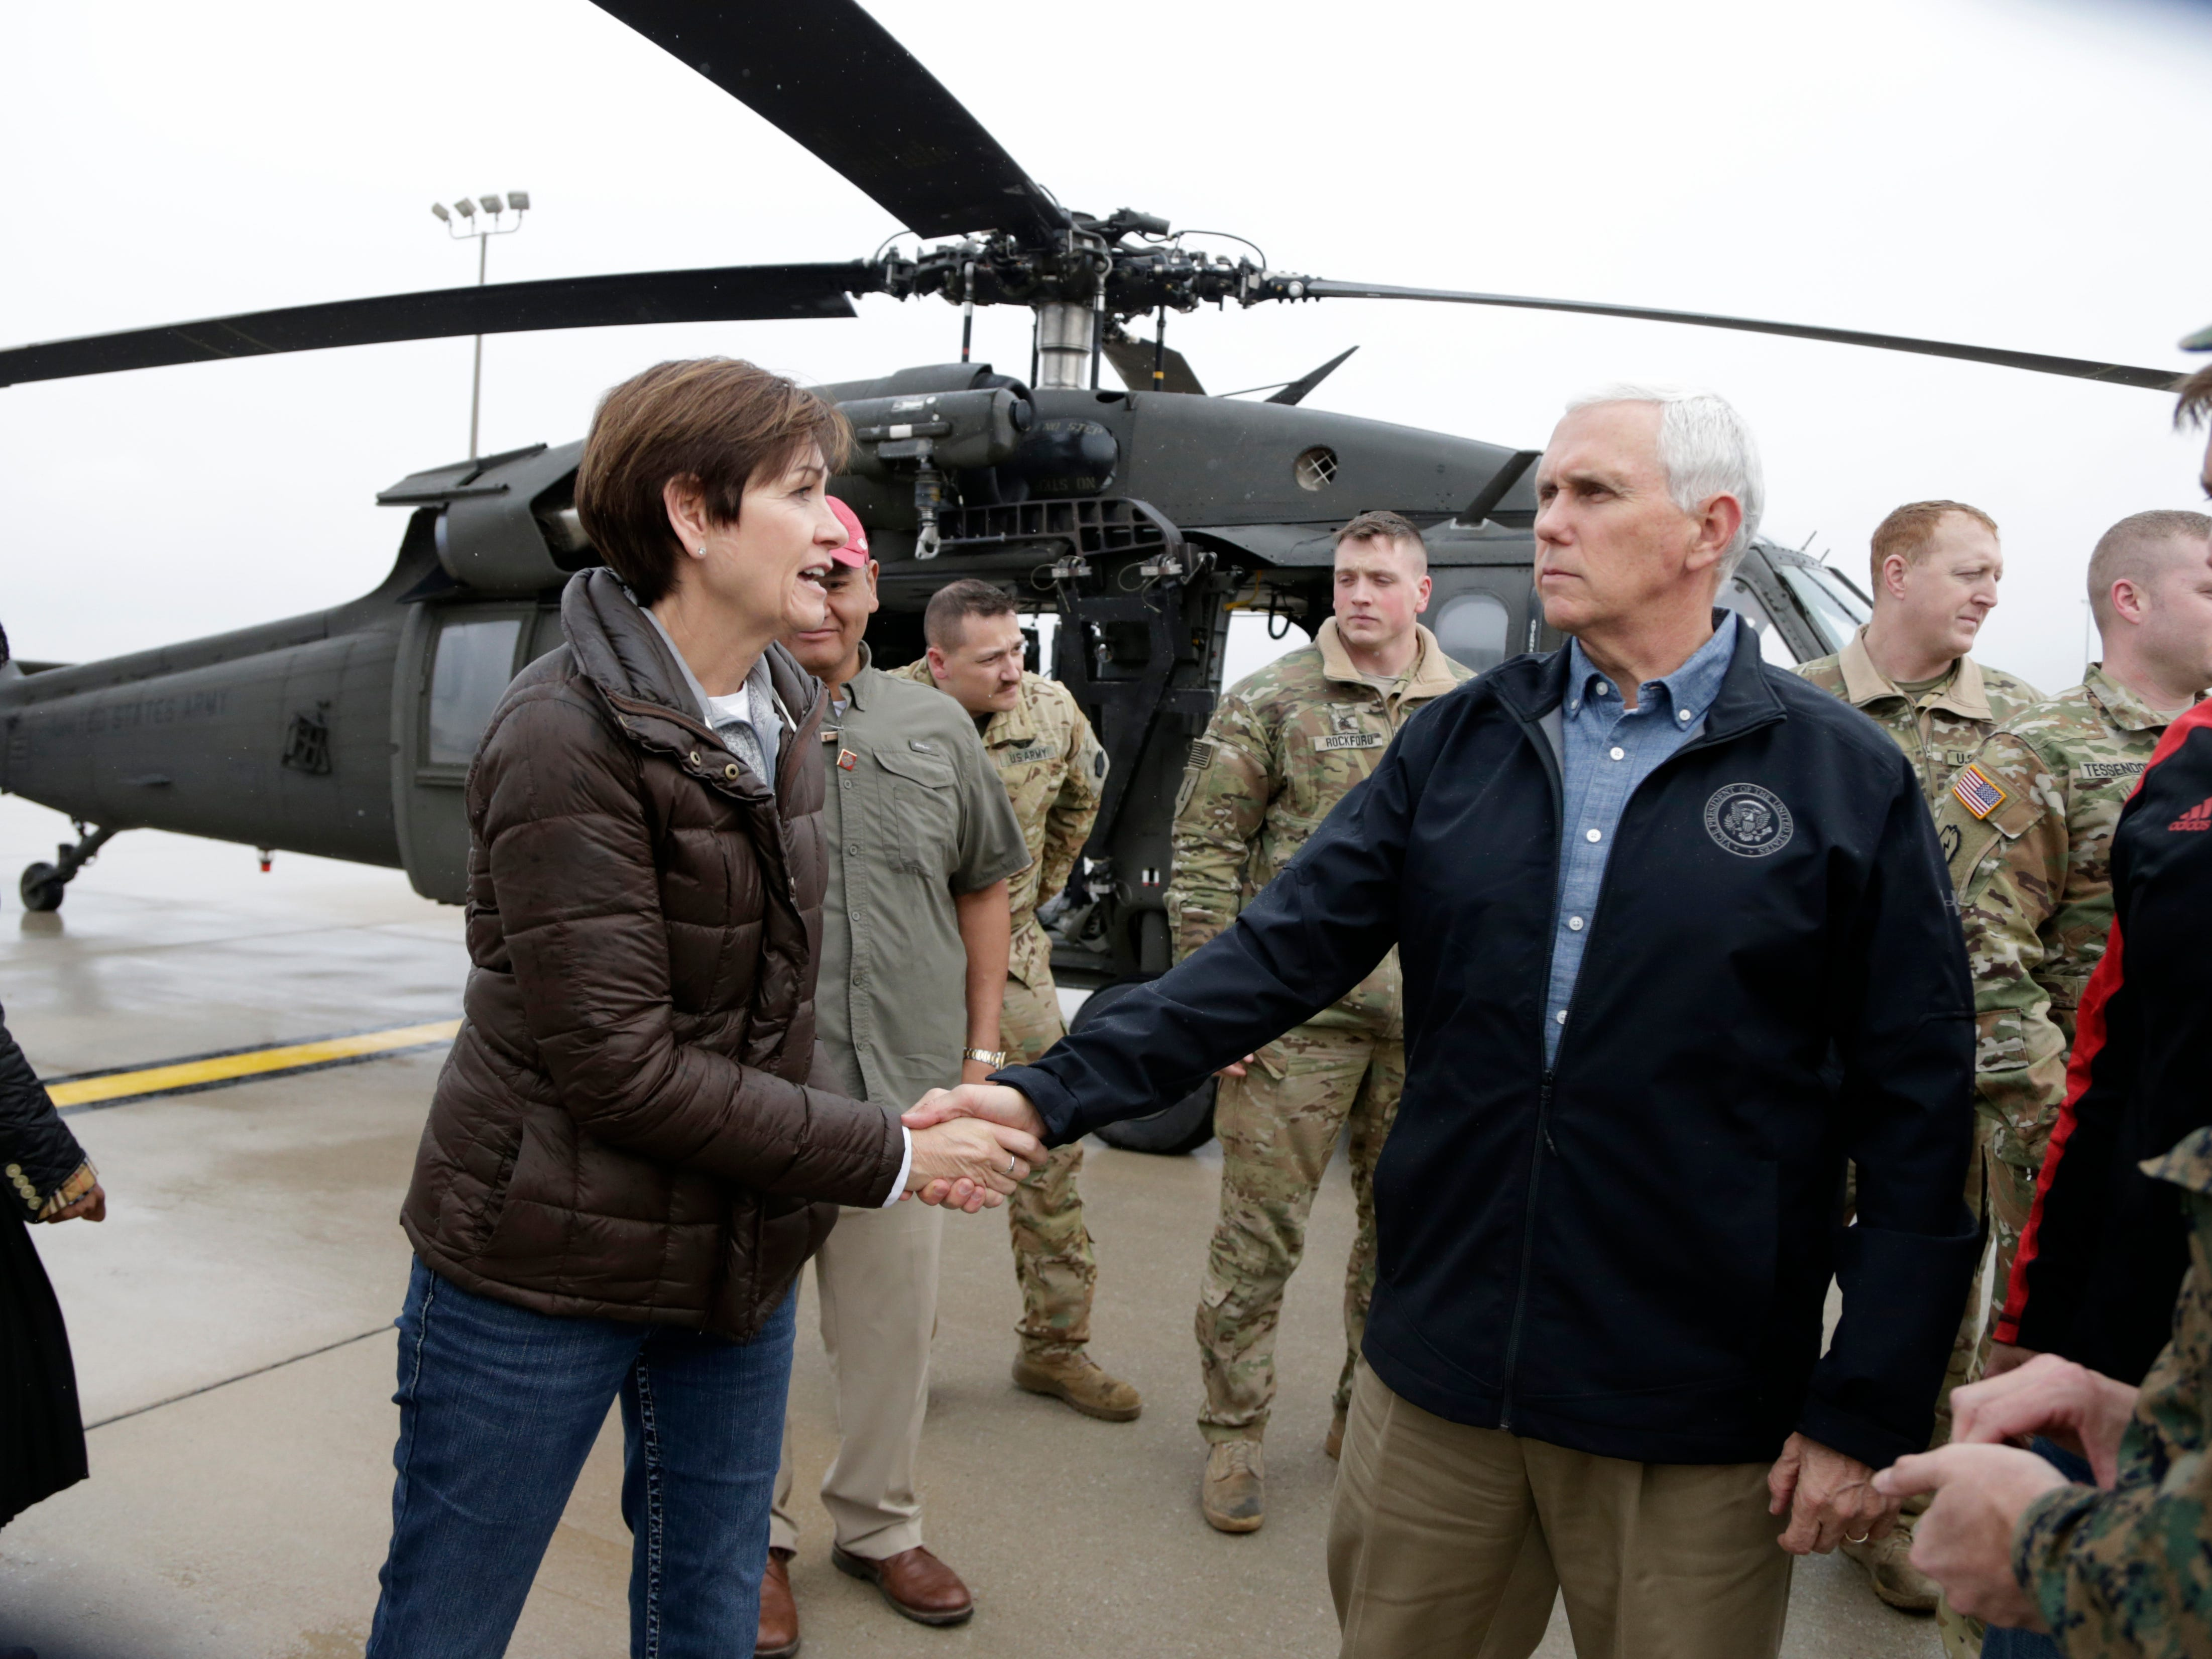 Iowa Gov. Kim Reynolds shakes Vice President Mike Pence's hand in Omaha, Neb. on, March 19, 2019, after they toured by helicopter areas flooded by the Missouri River.